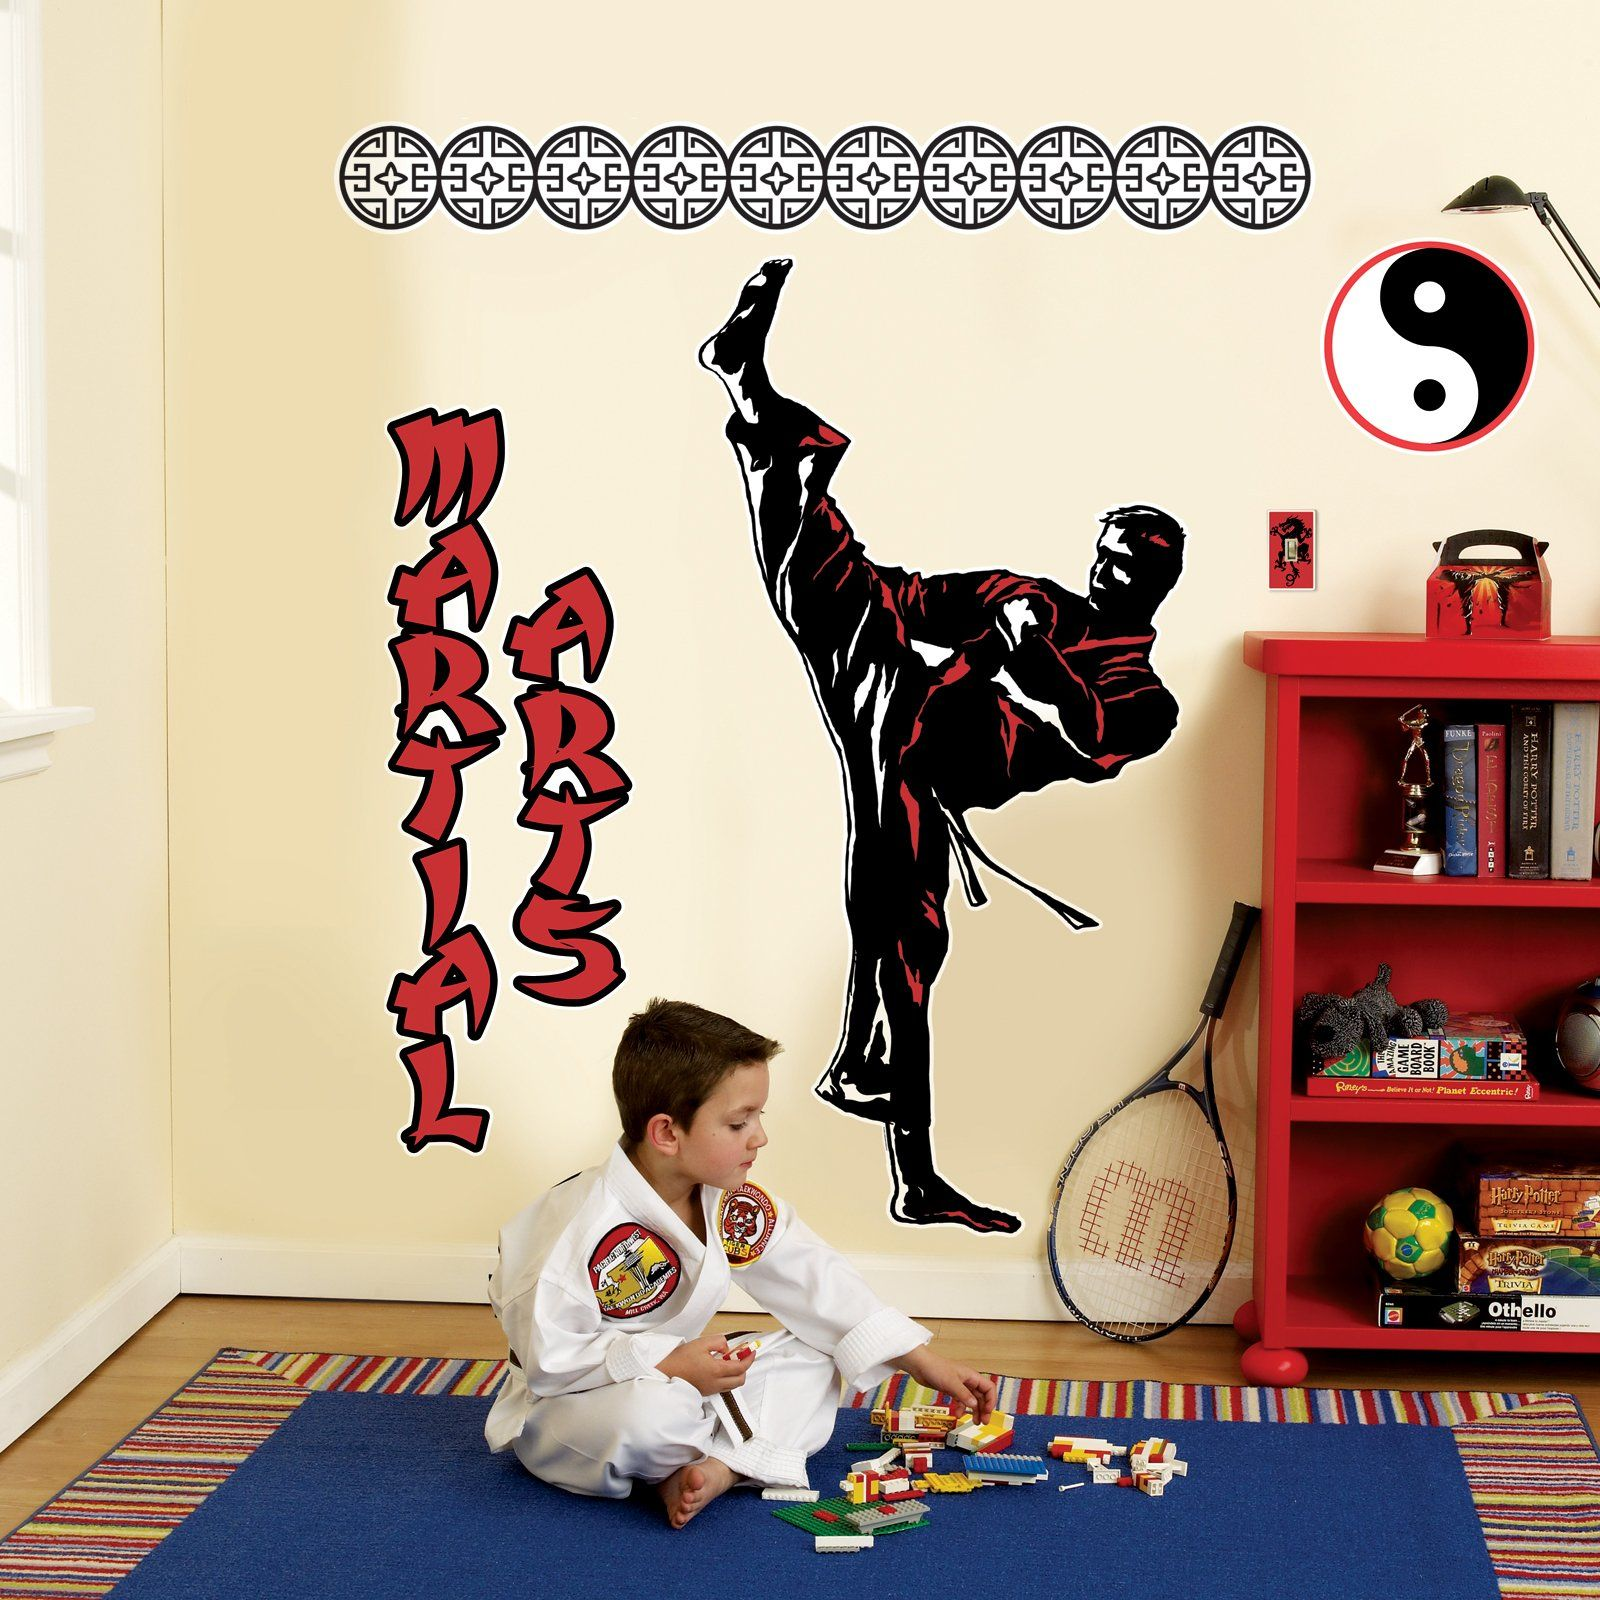 Martial Arts Giant Wall Decals at birthdayexpress.com  sc 1 st  Pinterest & Martial Arts Giant Wall Decals at birthdayexpress.com | Ninja ...